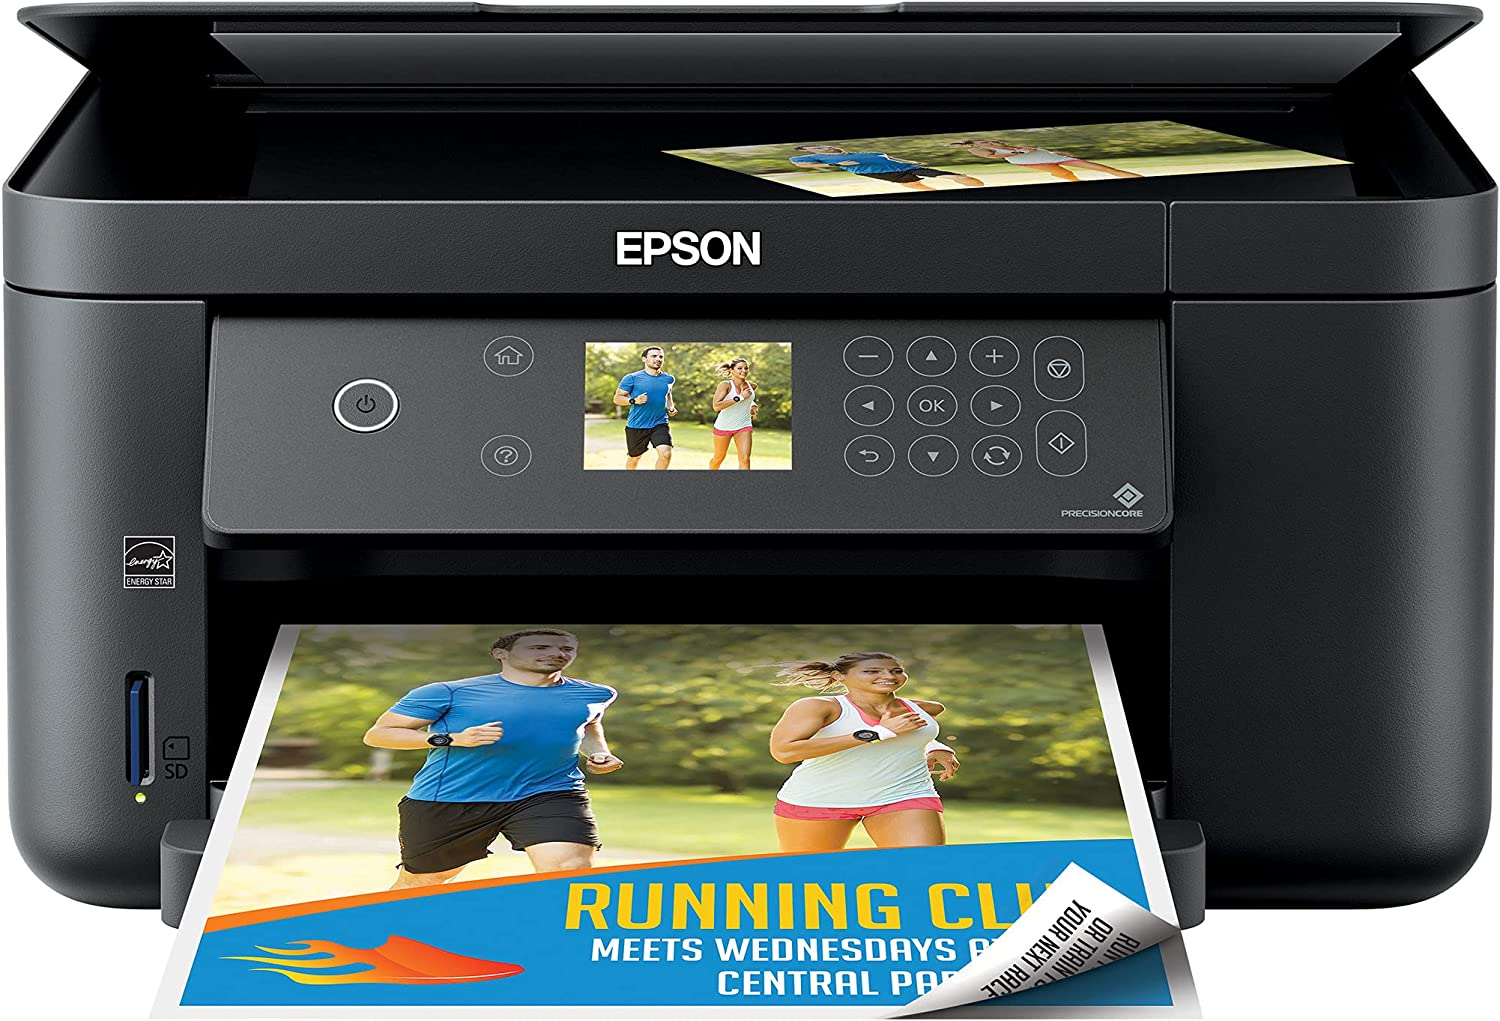 Epson Expression Home XP 5000 Series Wireless All-in-One Color Inkjet Printer, Black - Print Scan Copy - 14 ppm, 4800 x 1200 dpi, Auto 2-Sided Borderless Print, 150-Sheet, Card Slot